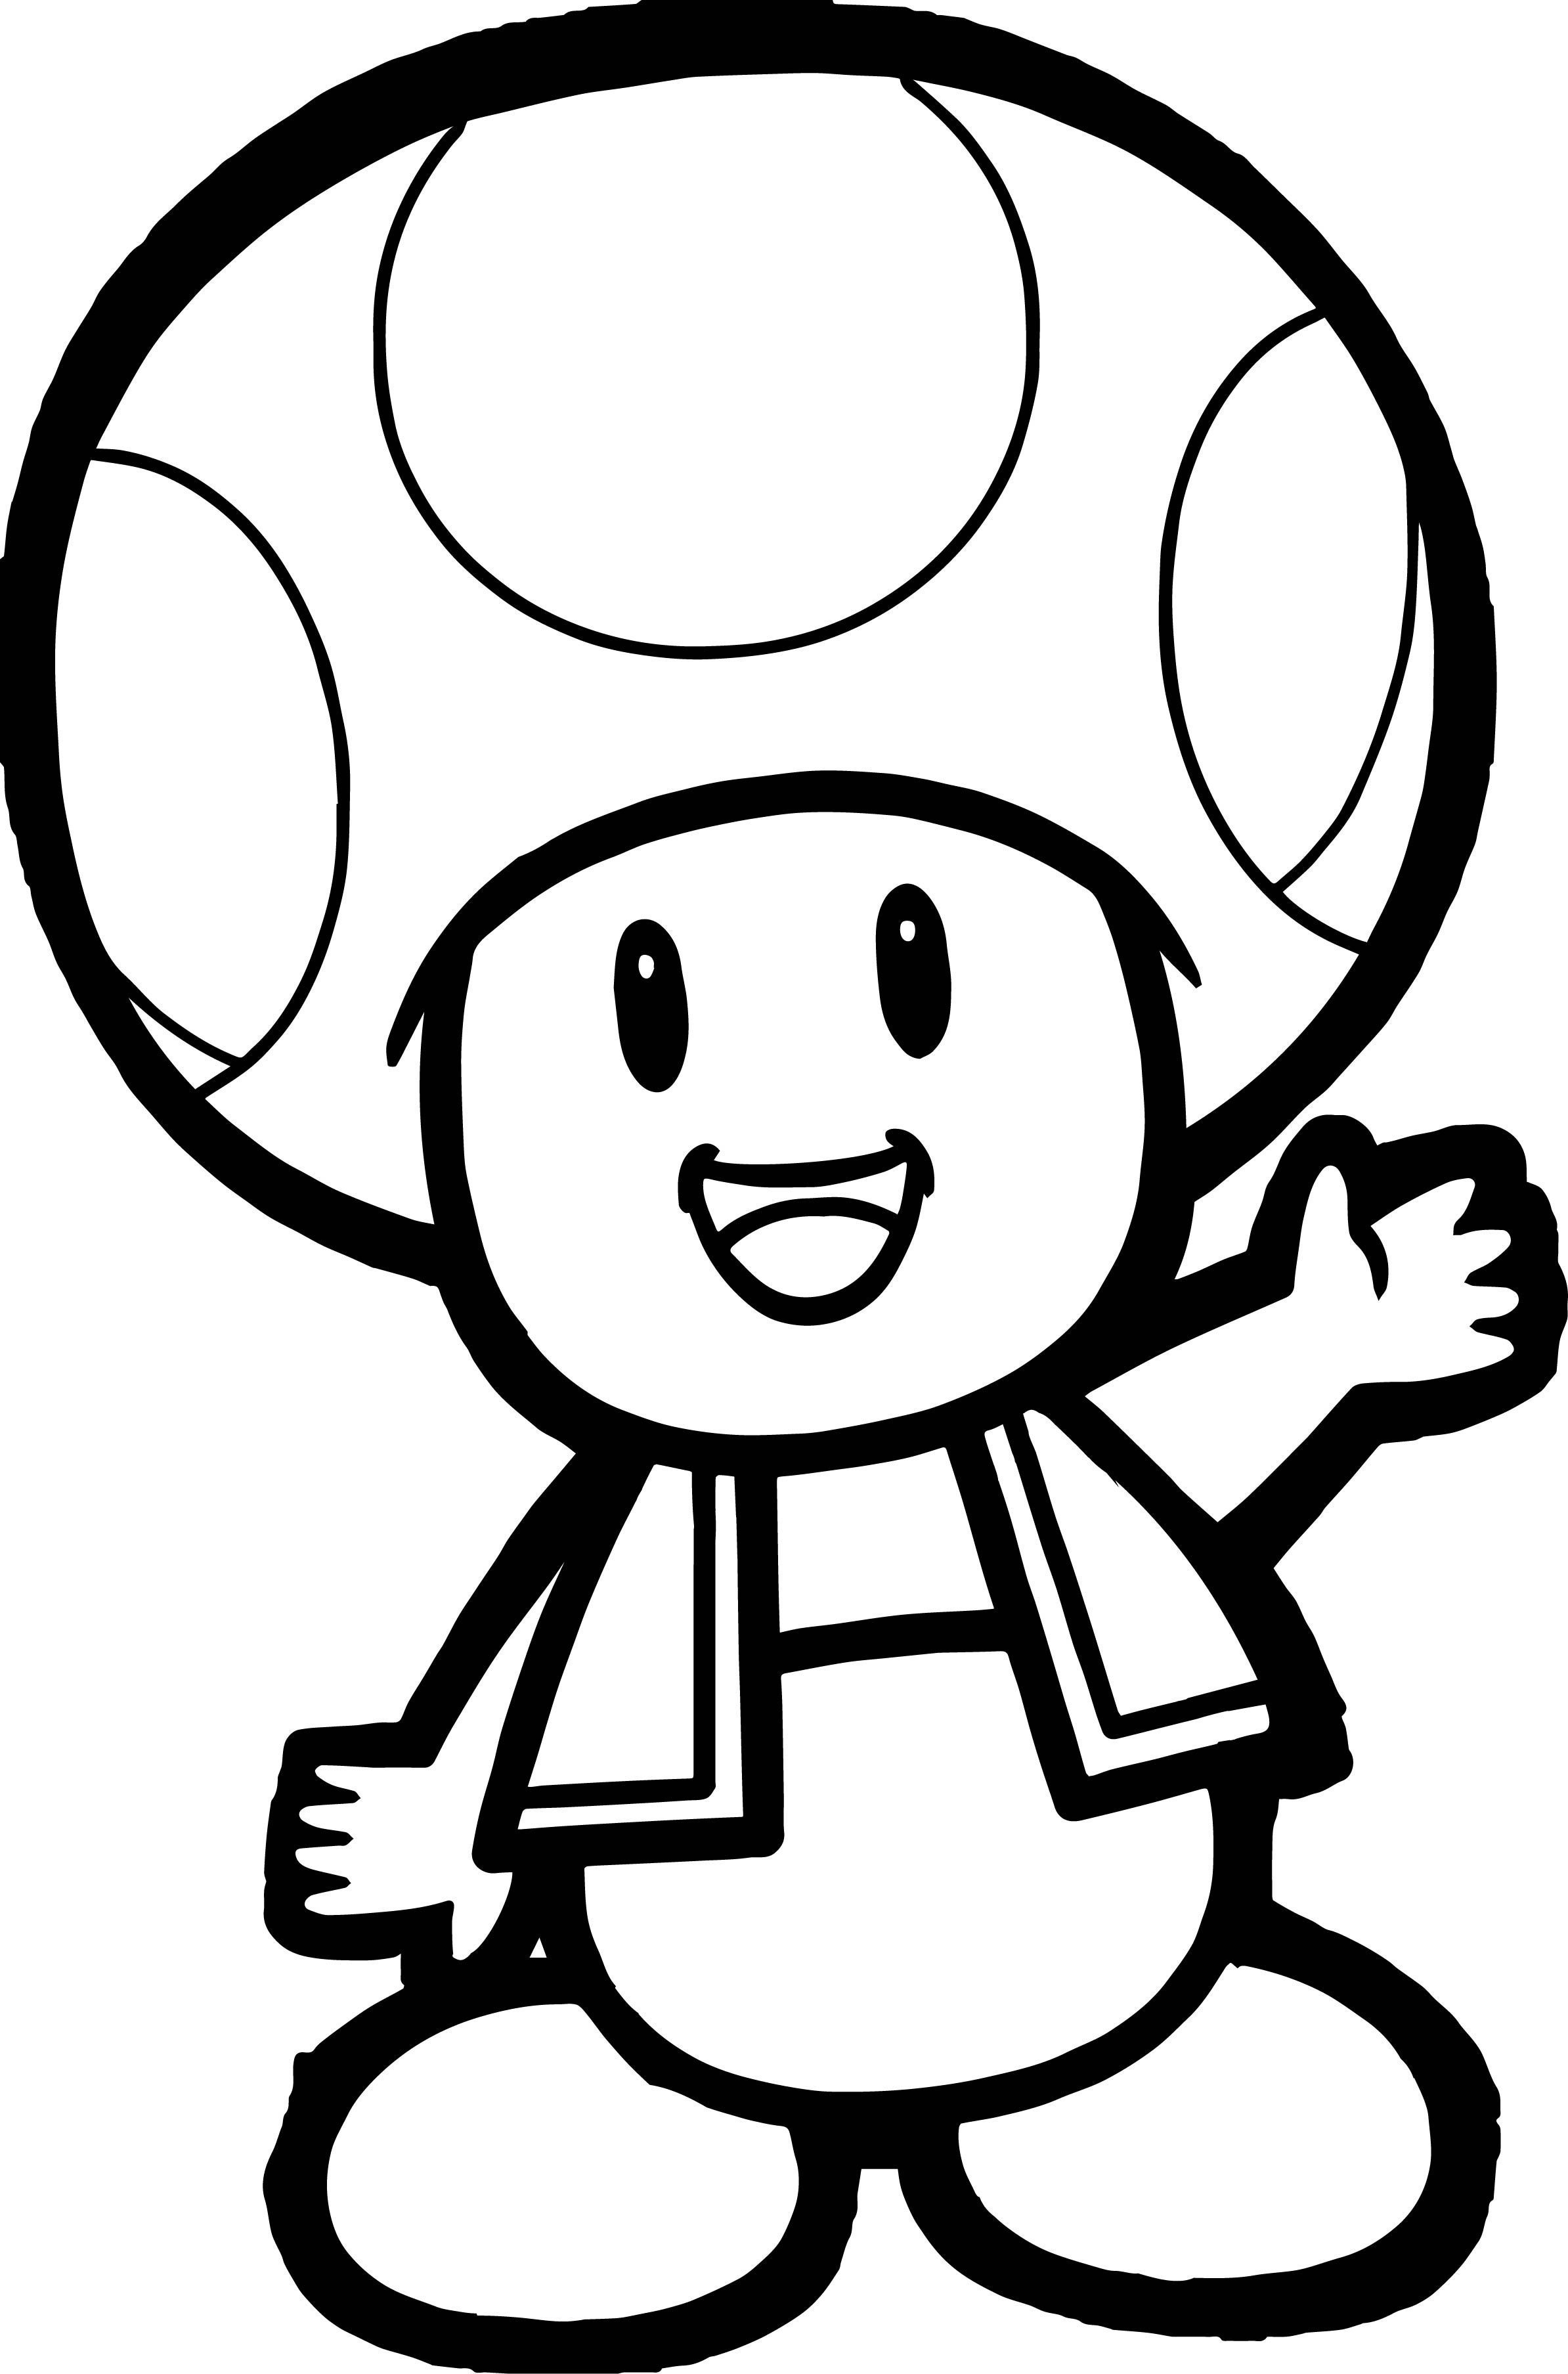 2388x3615 Awesome Super Mario Bros Coloring Pages Gallery Printable